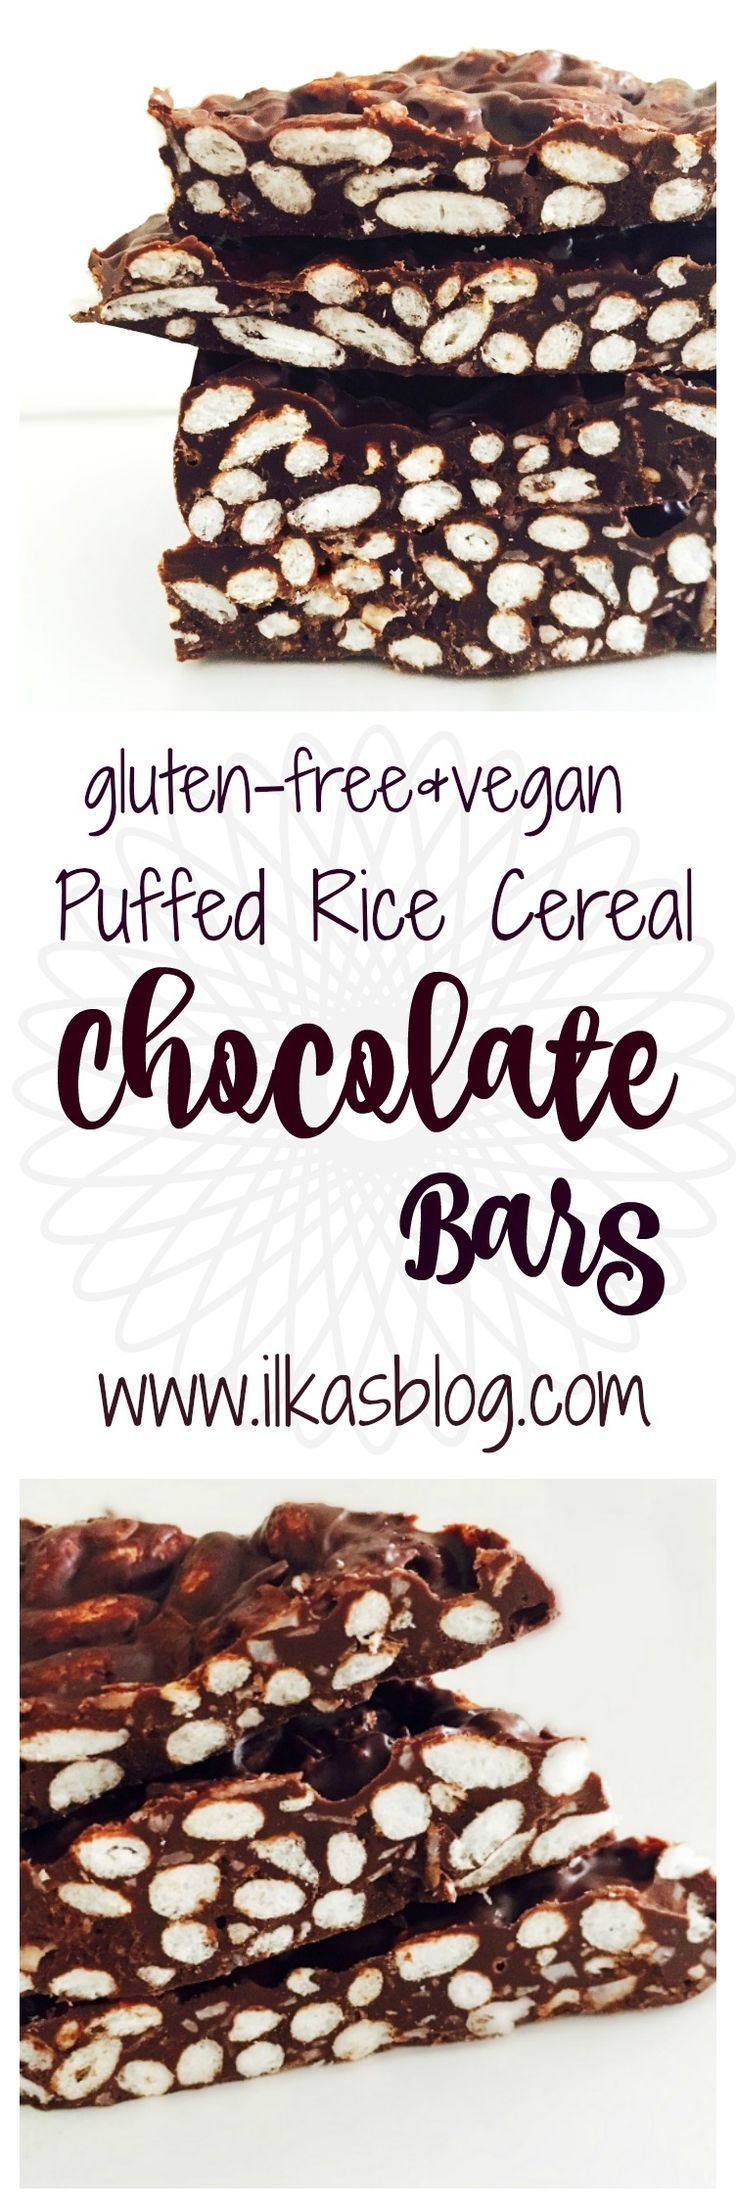 A delicious no-bake chocolate snack. Made with chocolate, coconut oil, puffed rice cereal and coconut flakes. Gluten-free and vegan.